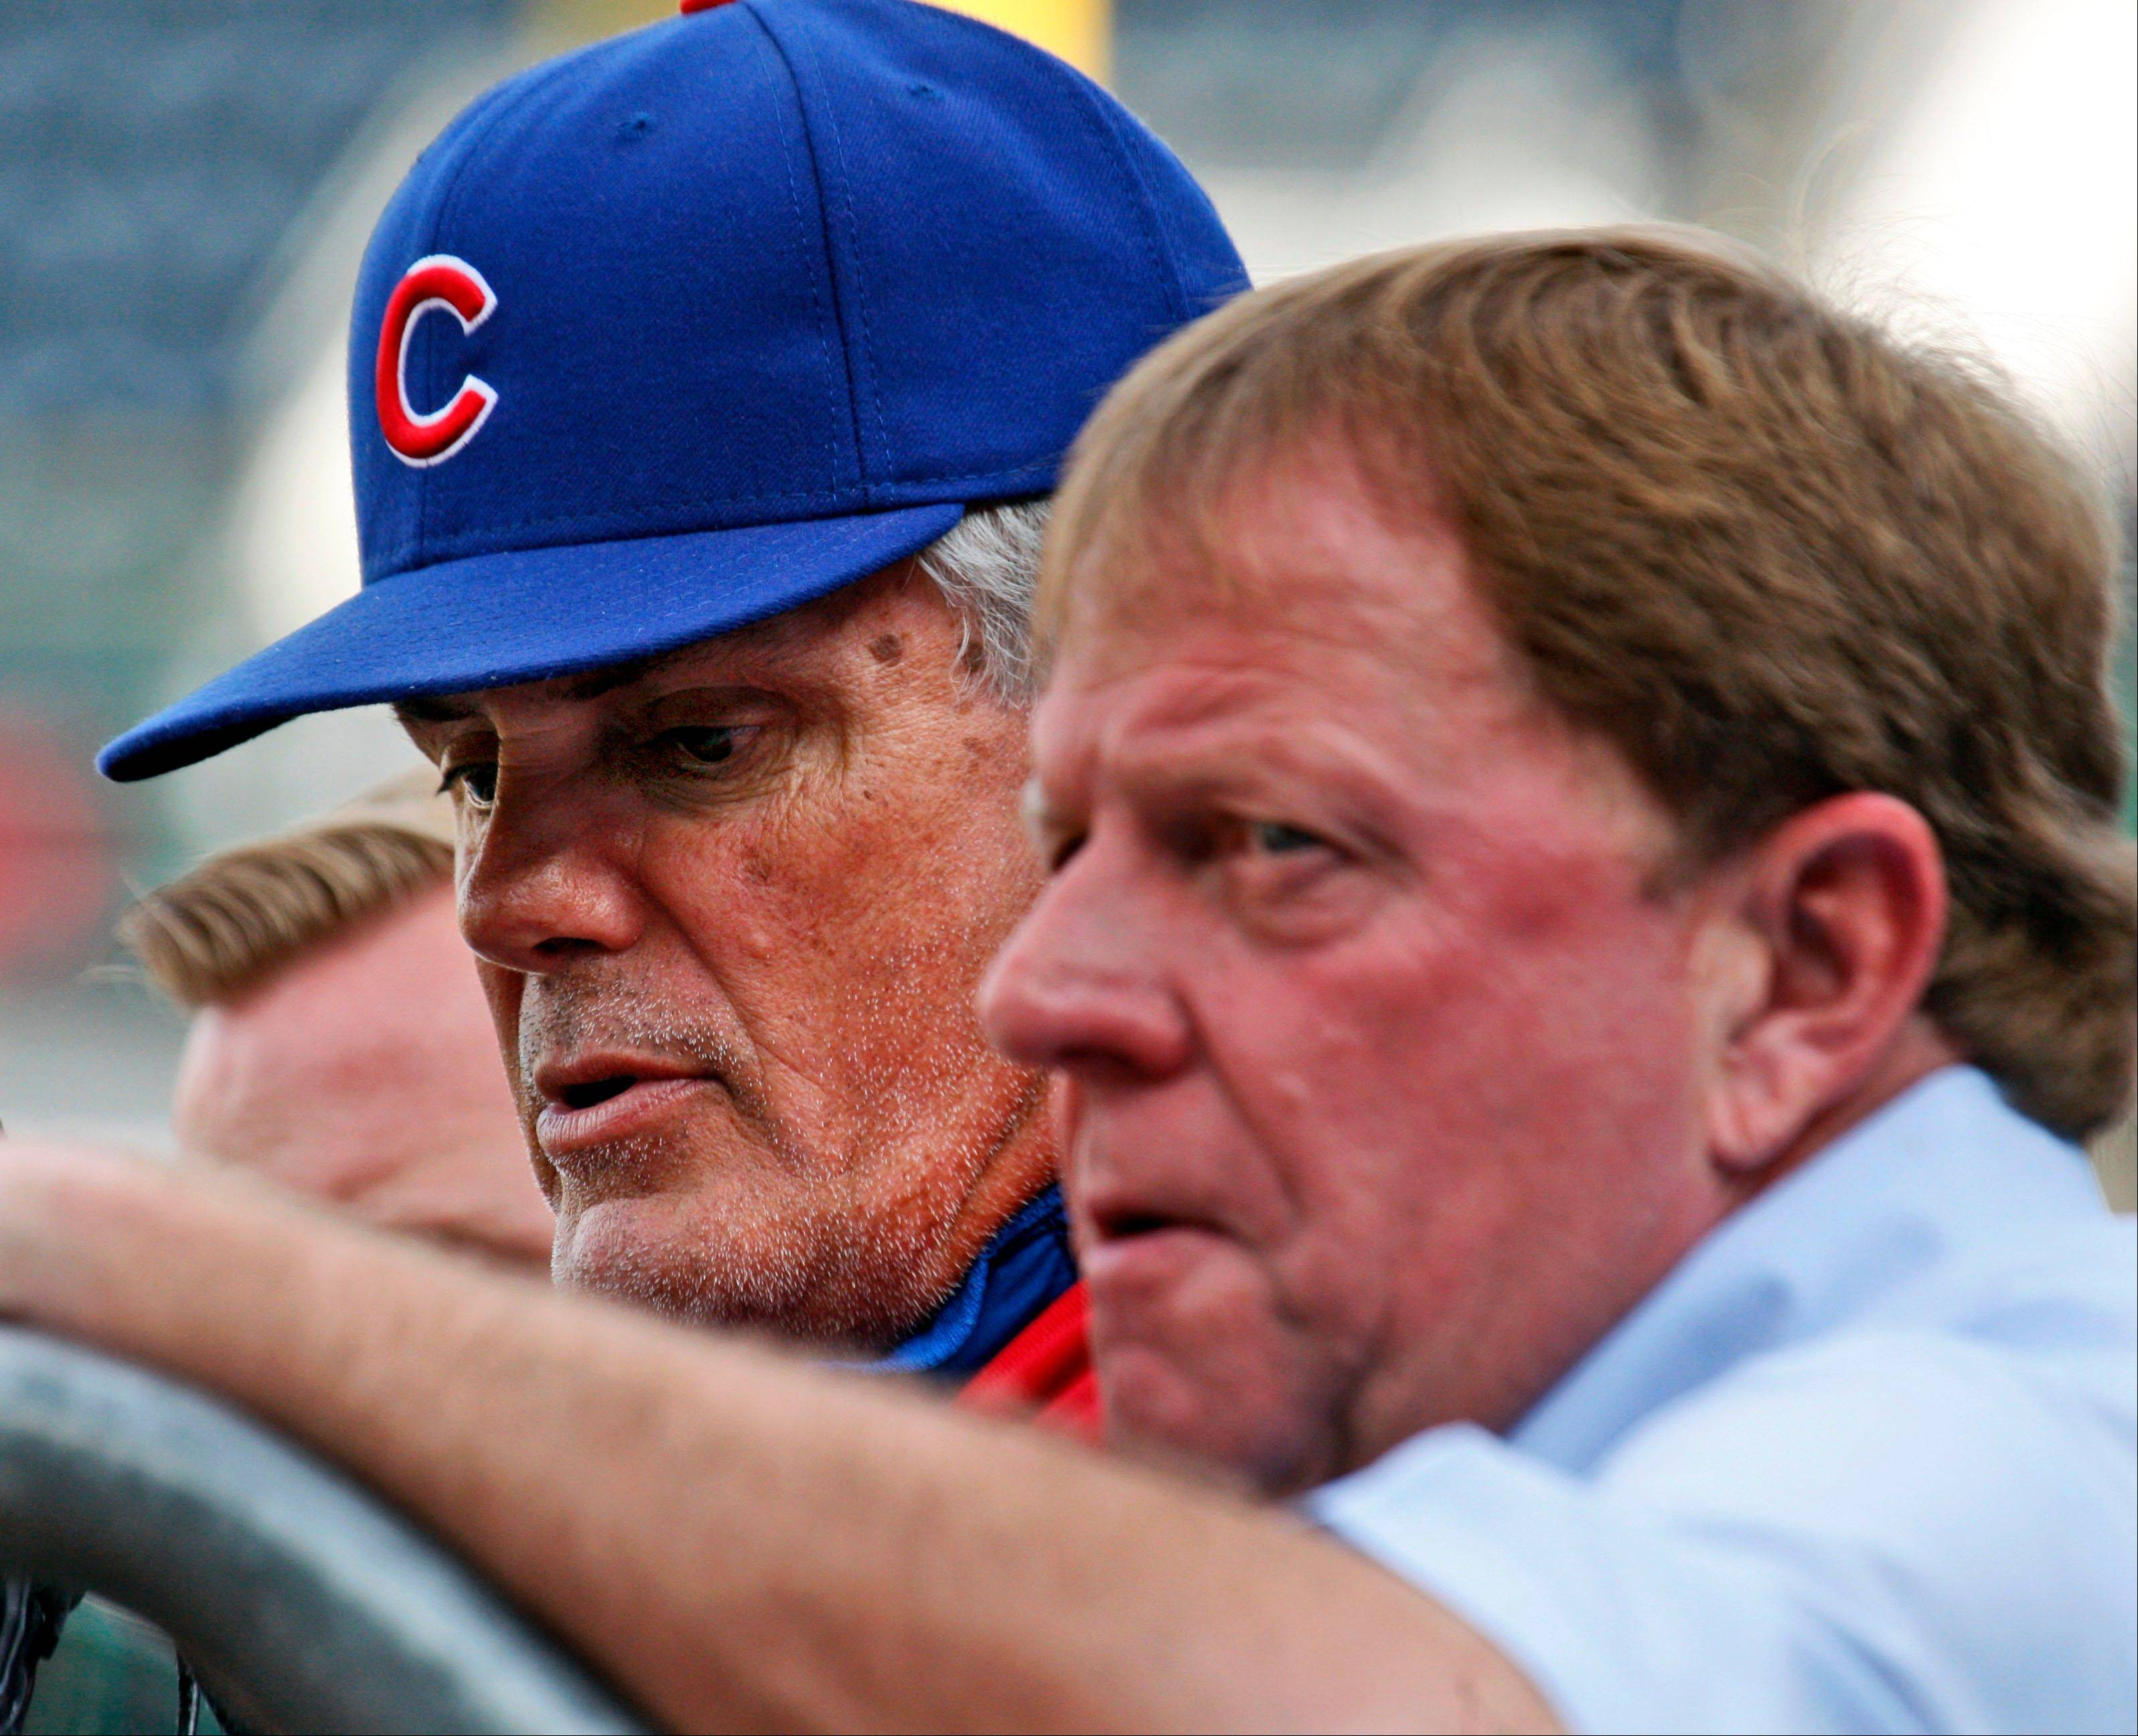 Chicago Cubs manager Lou Piniella, left, talks with Cubs general manager Jim Hendry before a baseball game against the Pittsburgh Pirates in Pittsburgh Tuesday, June 1, 2010.